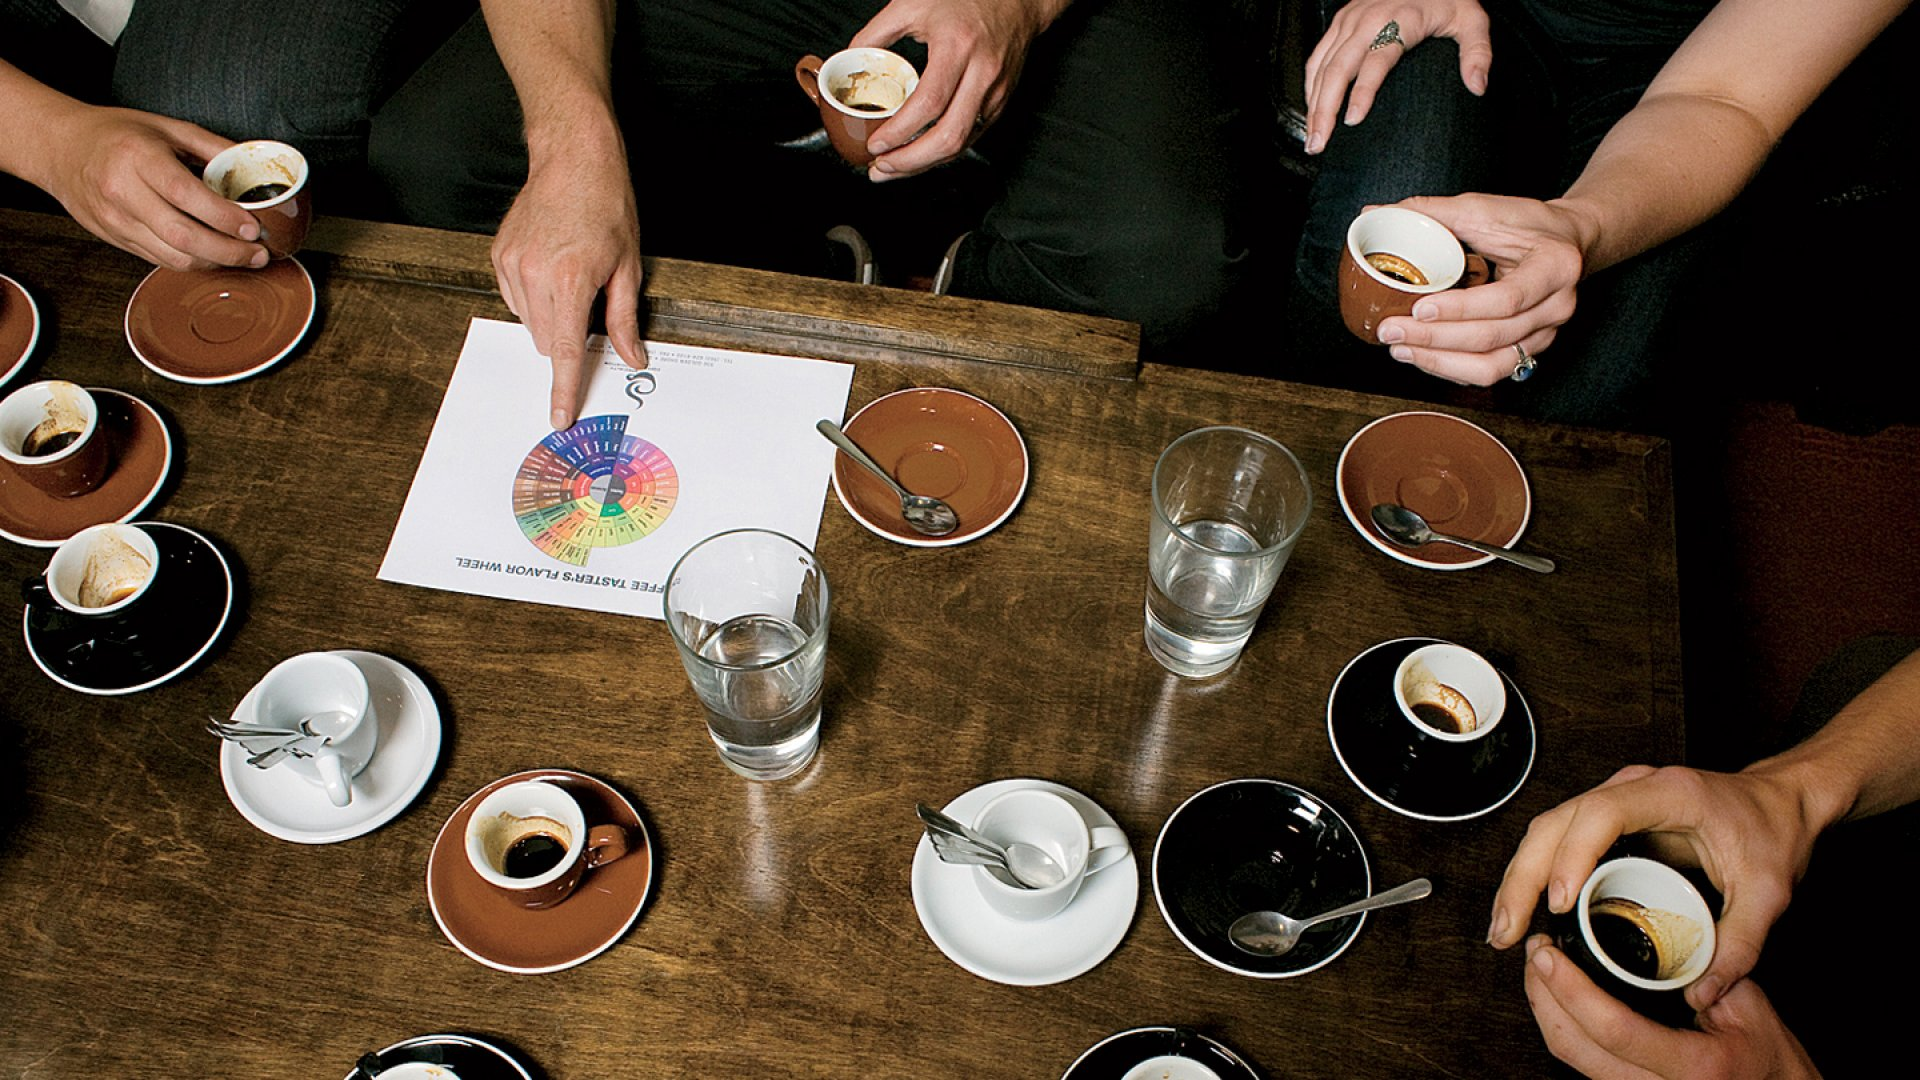 Can Coffee Shop Noises Make You More Creative?